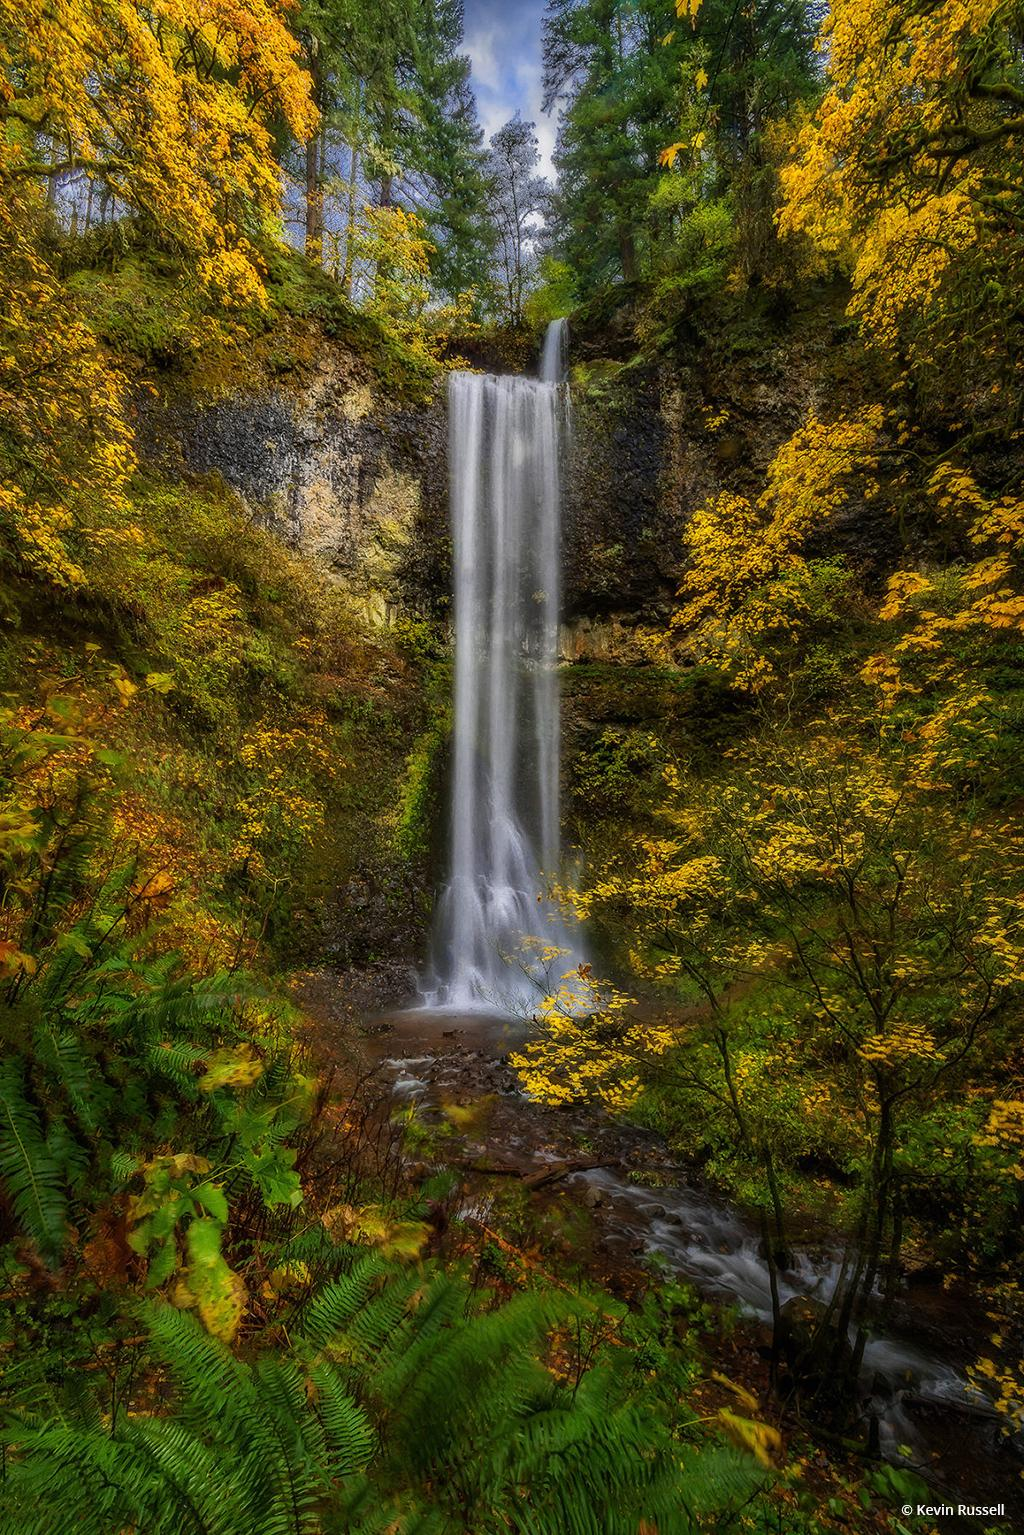 """Today's Photo Of The Day is """"Double Falls"""" by Kevin Russell. Location: Silver Falls State Park, Oregon. See more of Kevin Russell's photography at www.krbackwoodsphotography.com."""